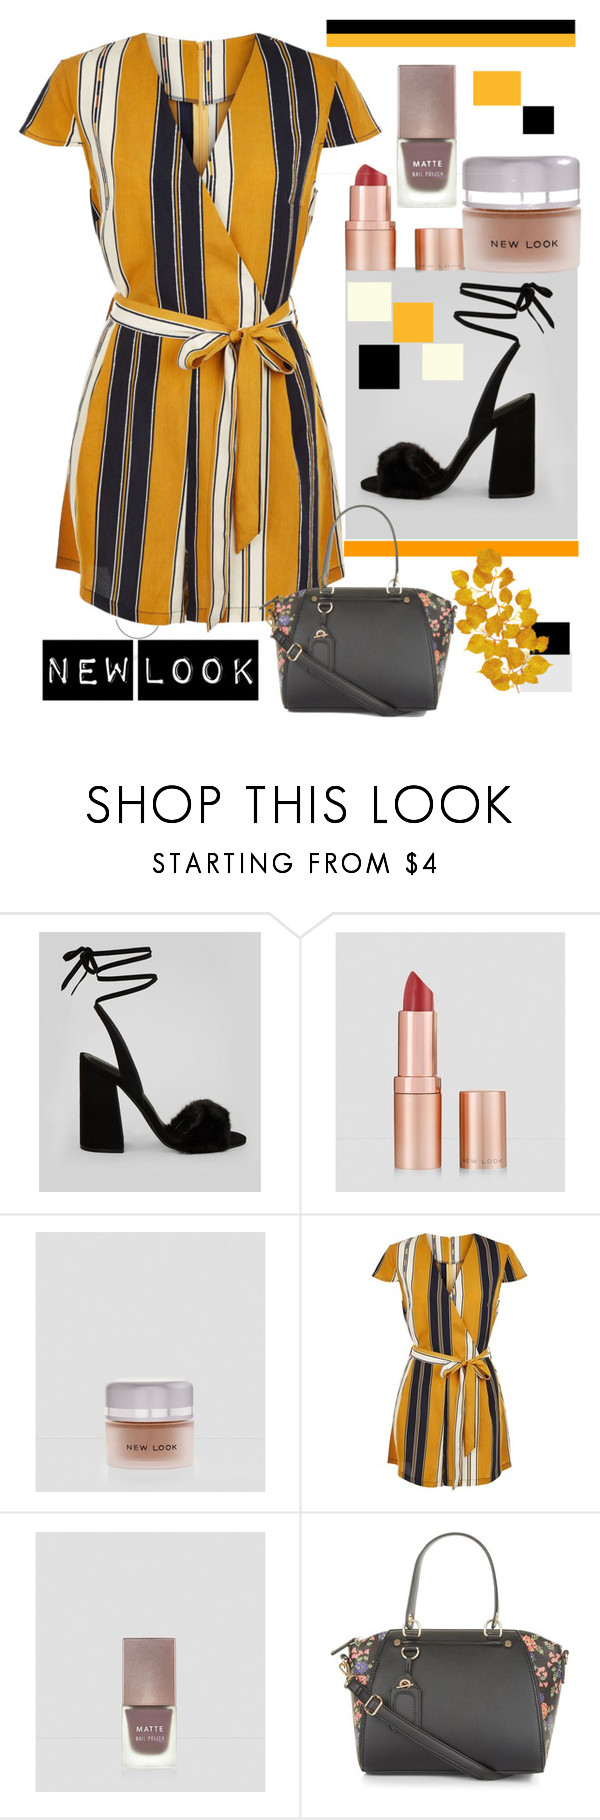 """""""NEW LOOK SUMMER ELEGANT LOOK"""" by rousou ❤ liked on Polyvore featuring New Look"""